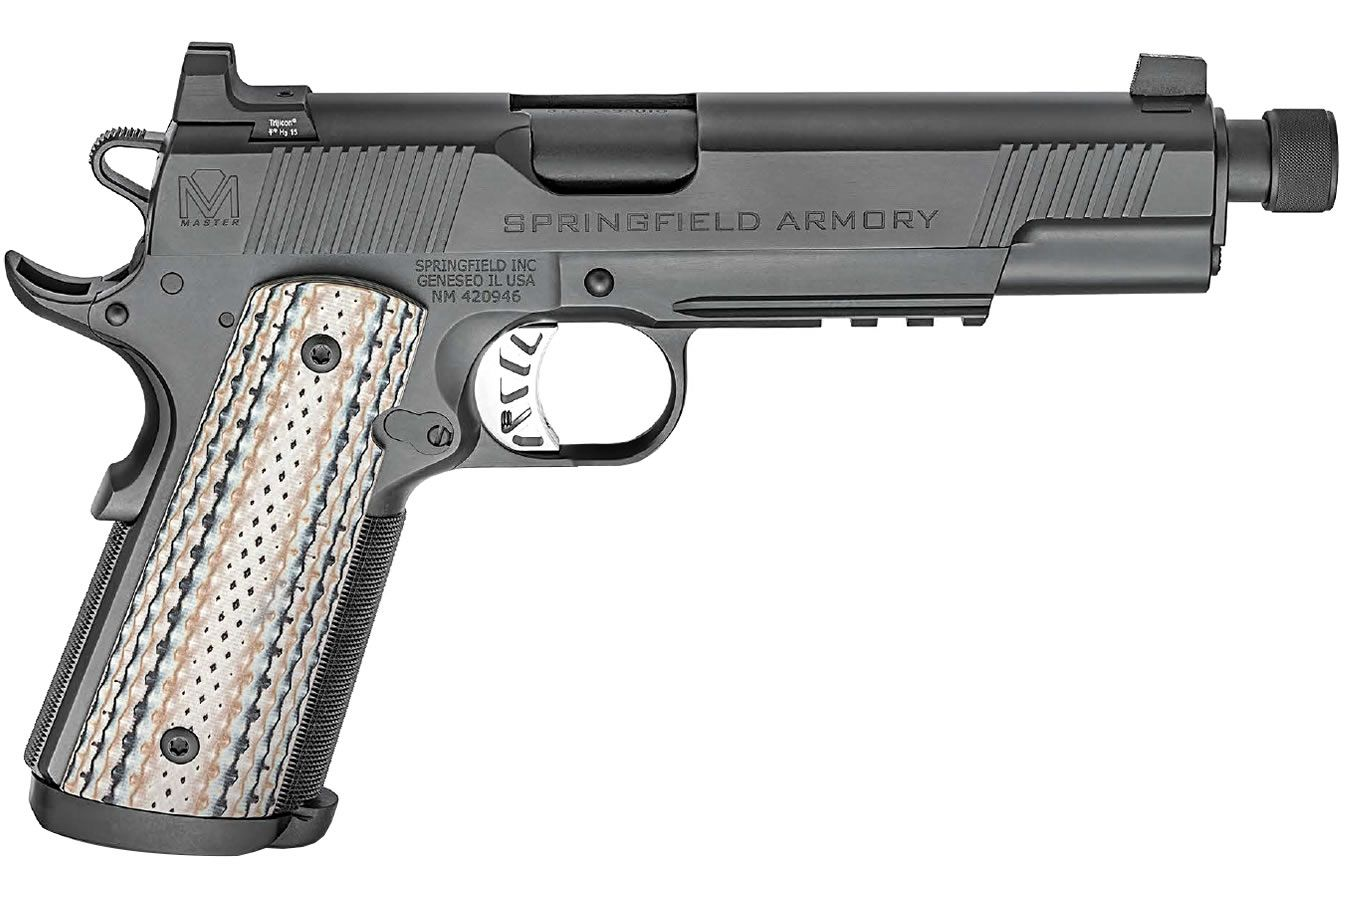 Springfield Armory Master Class Silent Operator 1911 Right Side View